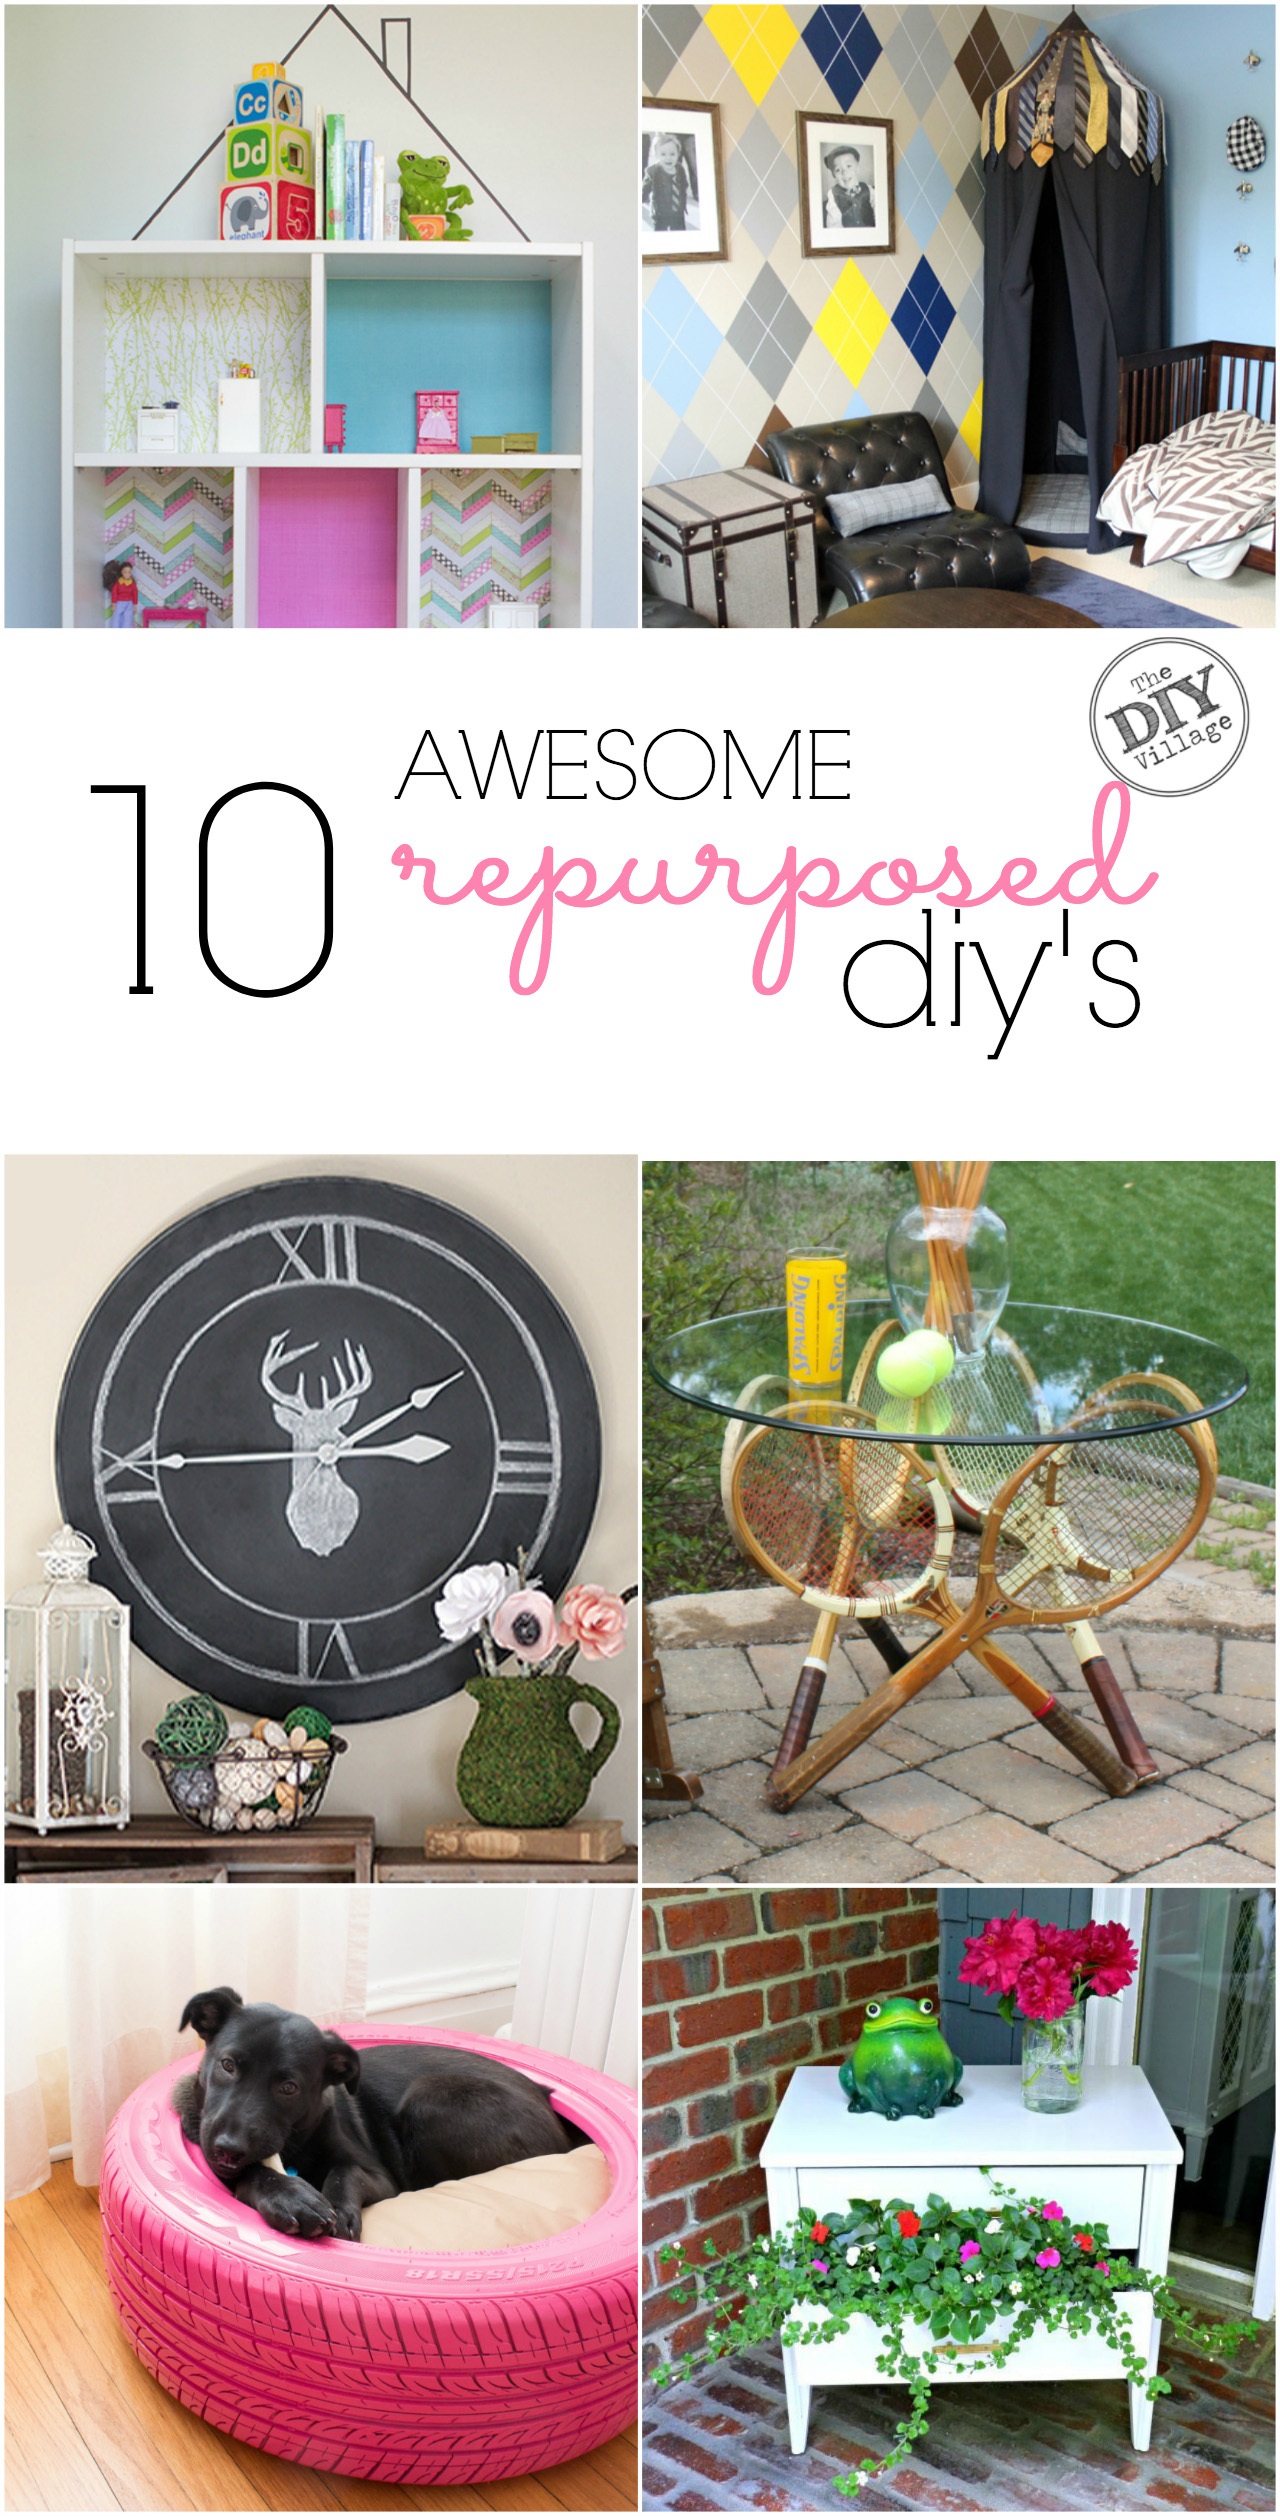 10 awesome repurposed DIY projects anyone can do!